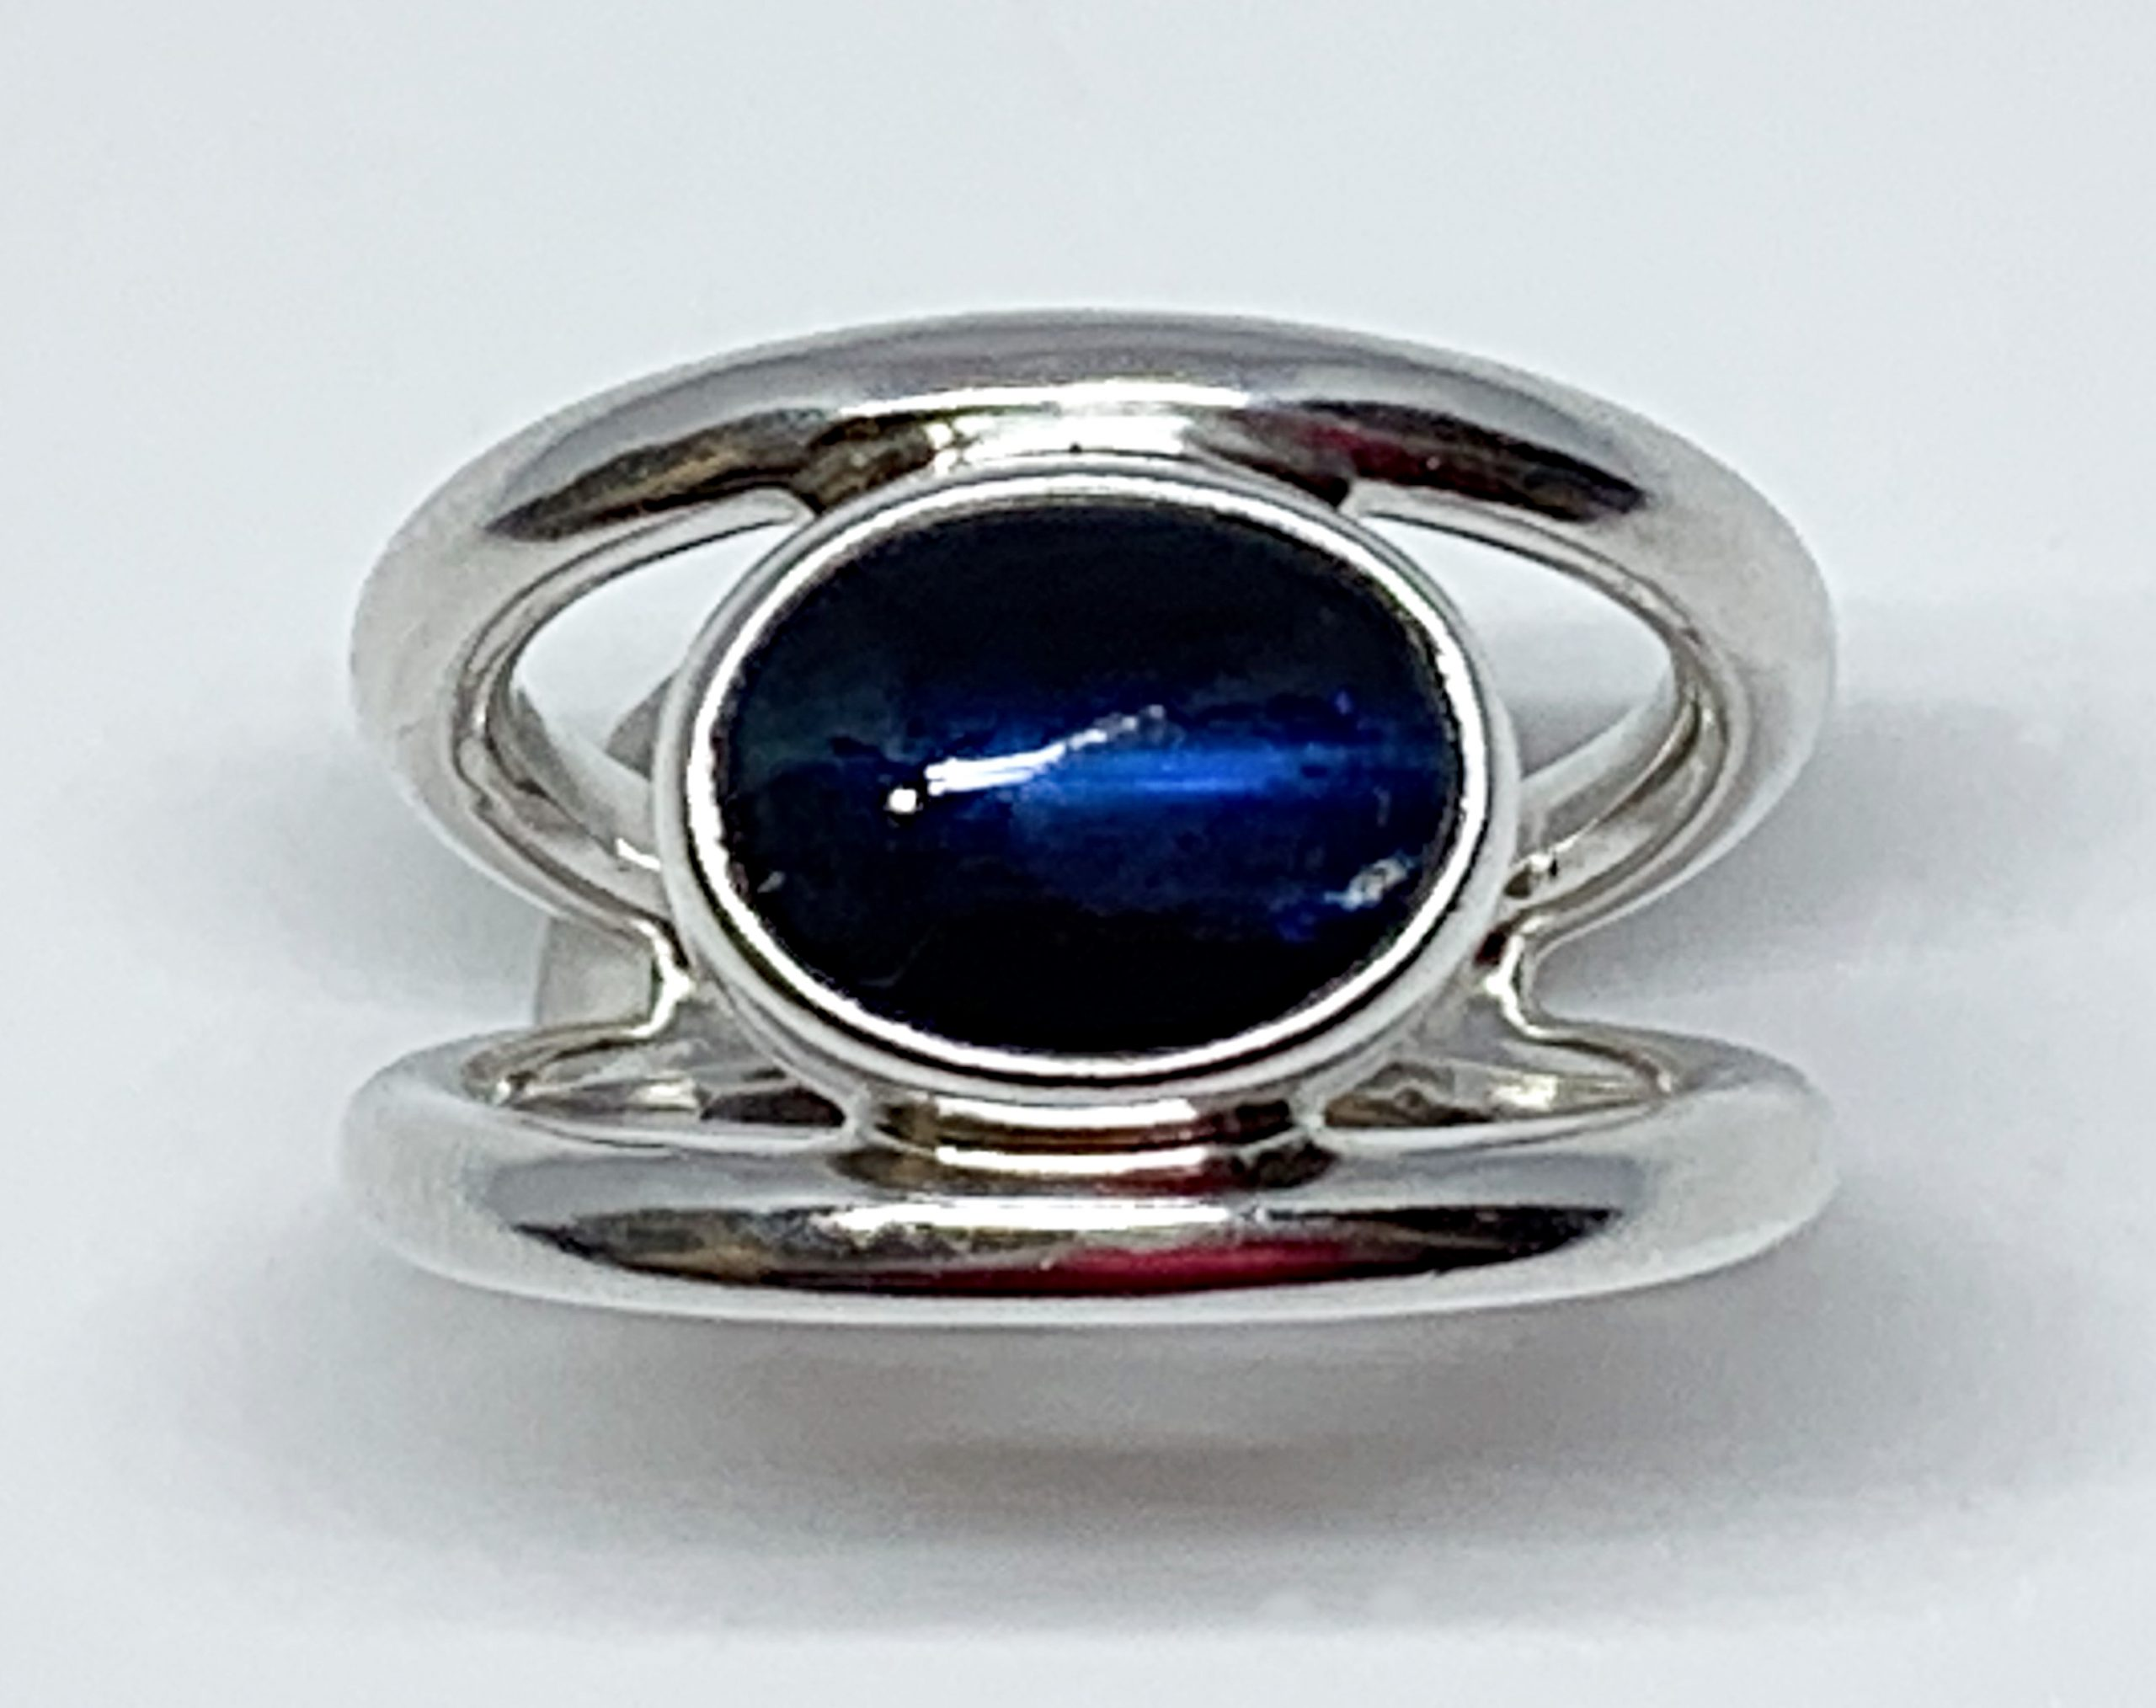 4.5ct blue kyanite + sterling silver ring by A&R Jewellery | Effusion Art Gallery + Cast Glass Studio, Invermere BC